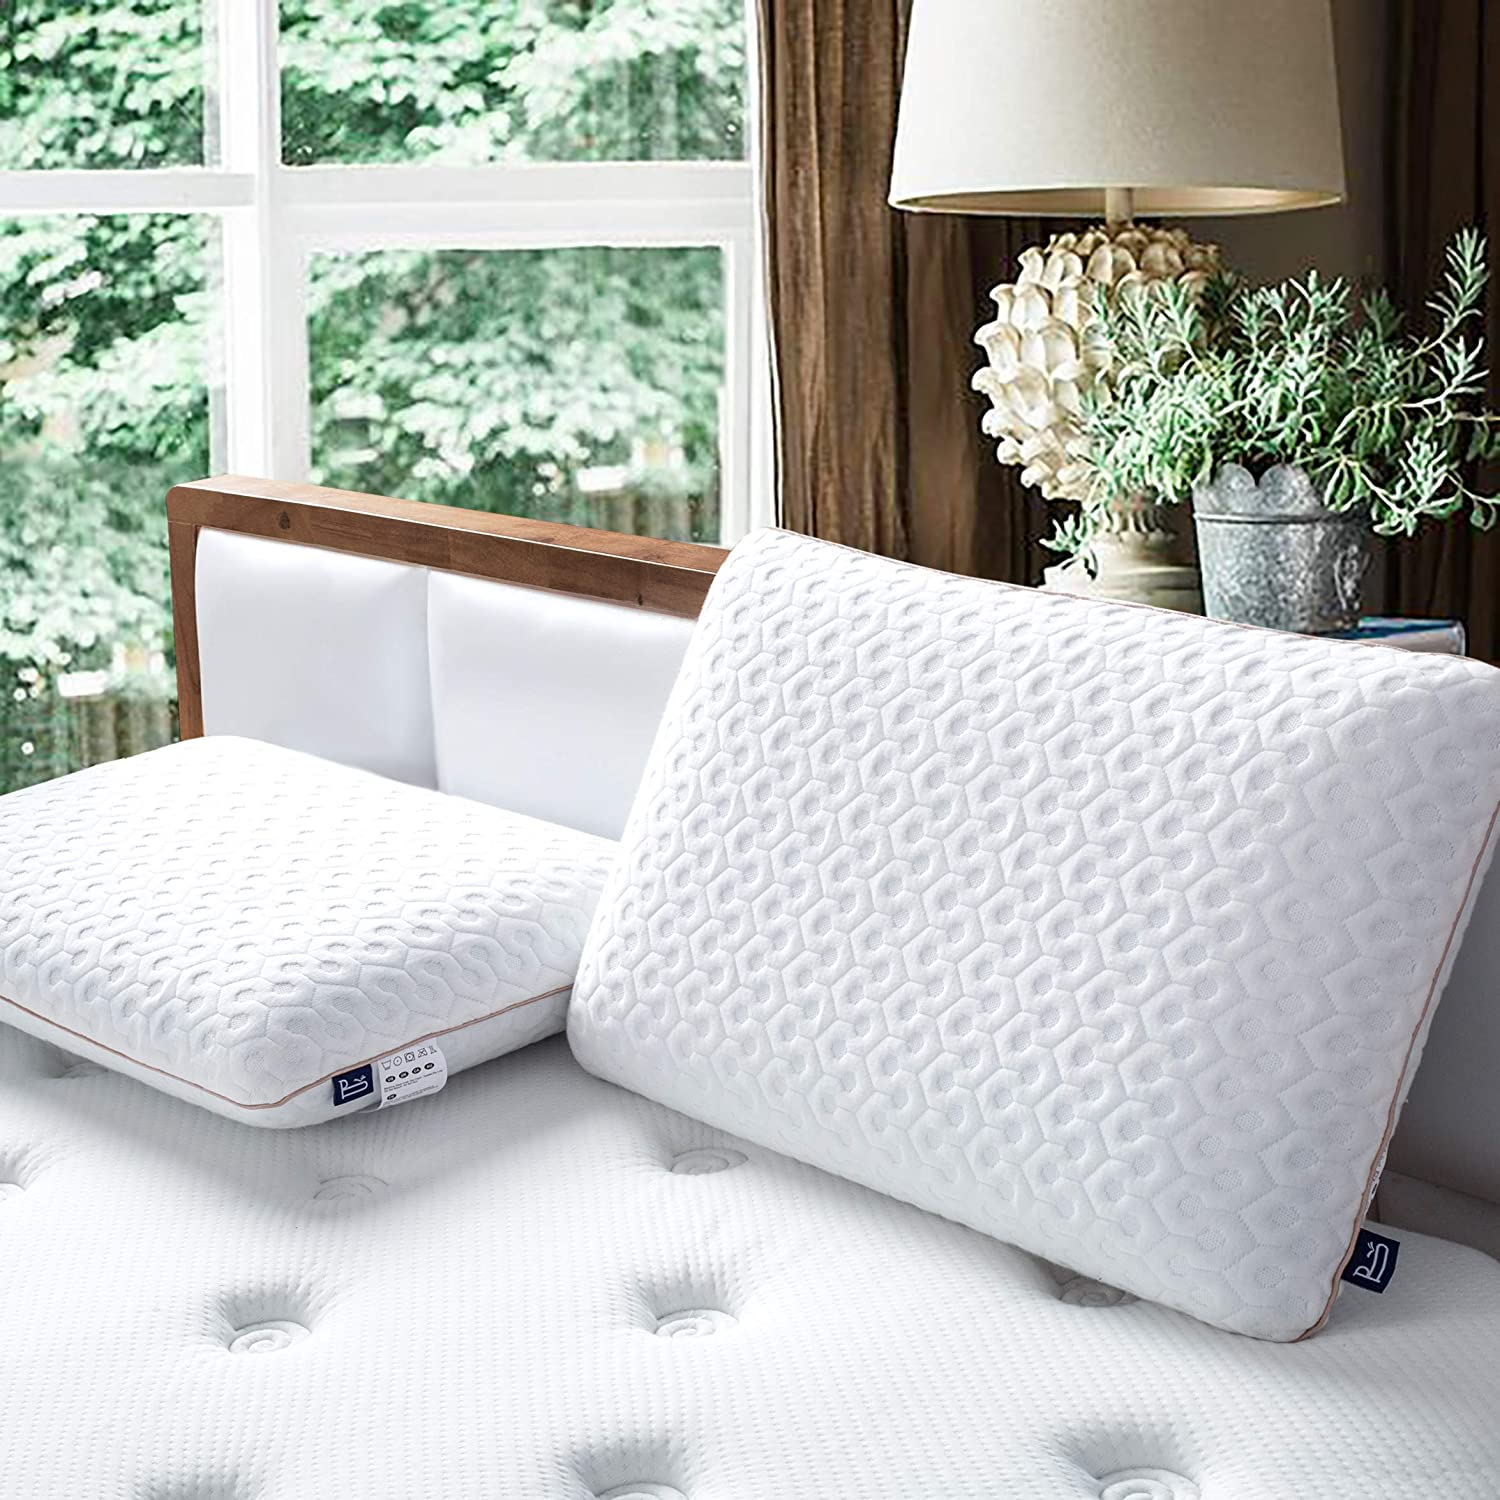 BedStory Memory Foam Pillow Medium Firm, Gel Foam Pillows for Sleeping Standard Size, Orthopedic Bed Pillows for Neck Pain Relief - Stomach Back or Side Sleepers, Ventilated Holes & CertiPUR-US